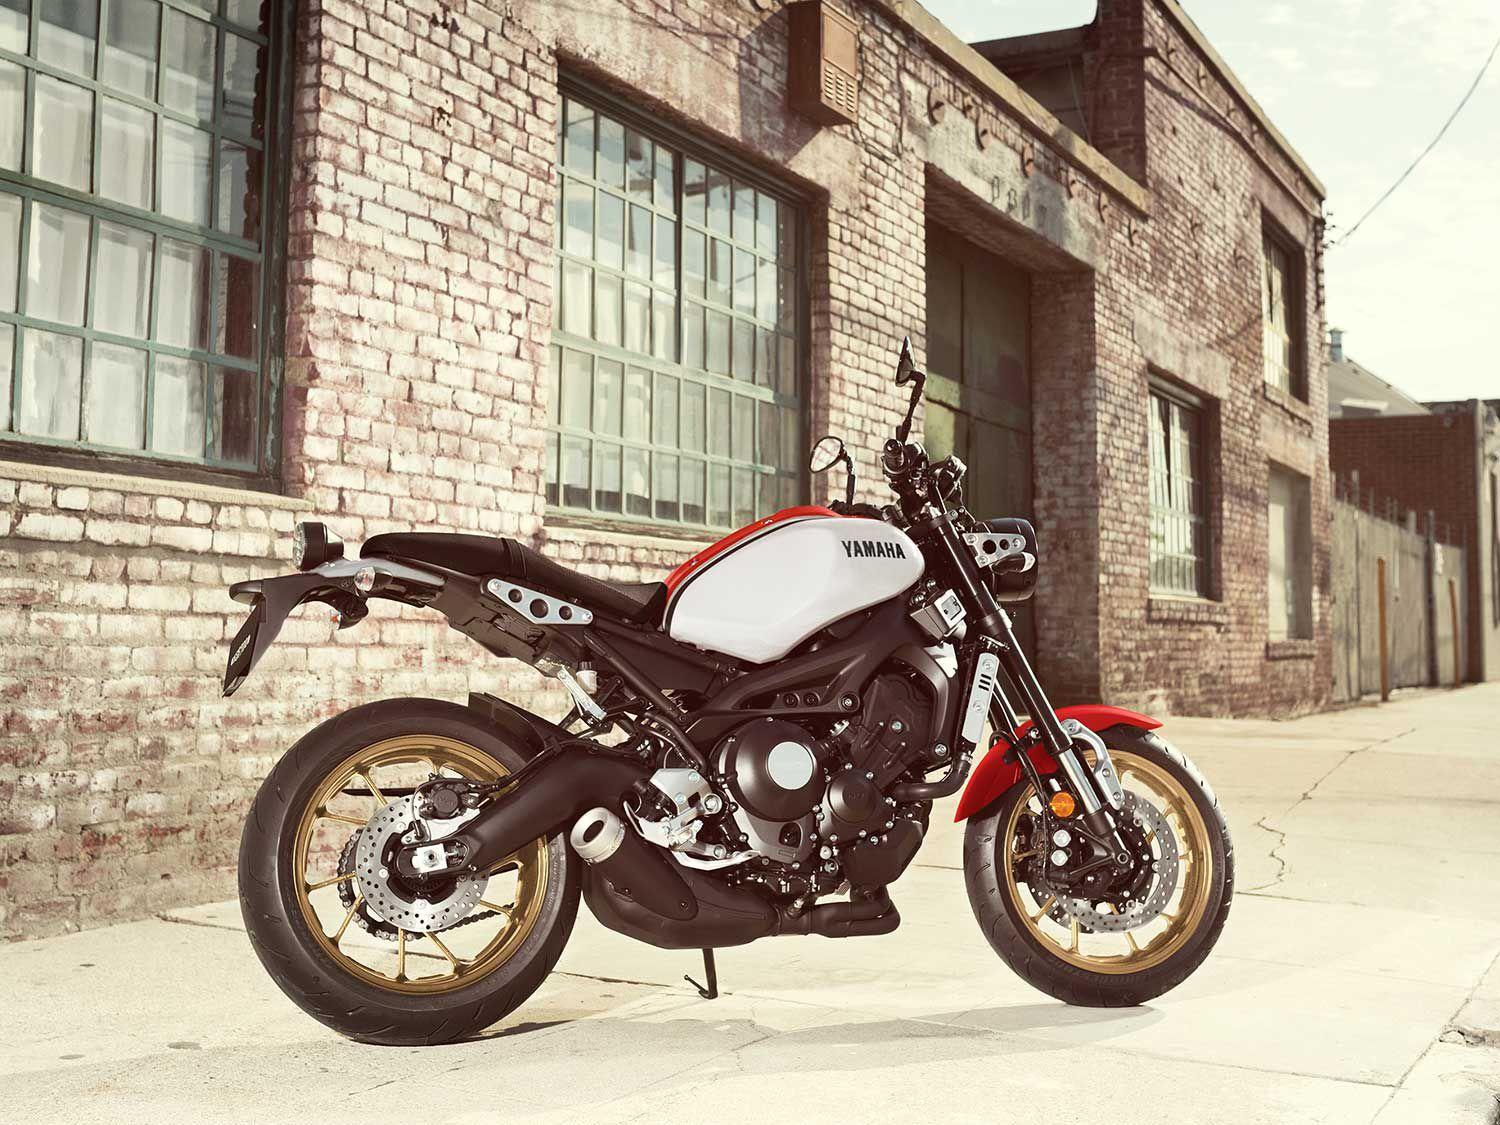 Yamaha's 2020 XSR900 blends sportbike tech and performance with retro styling.